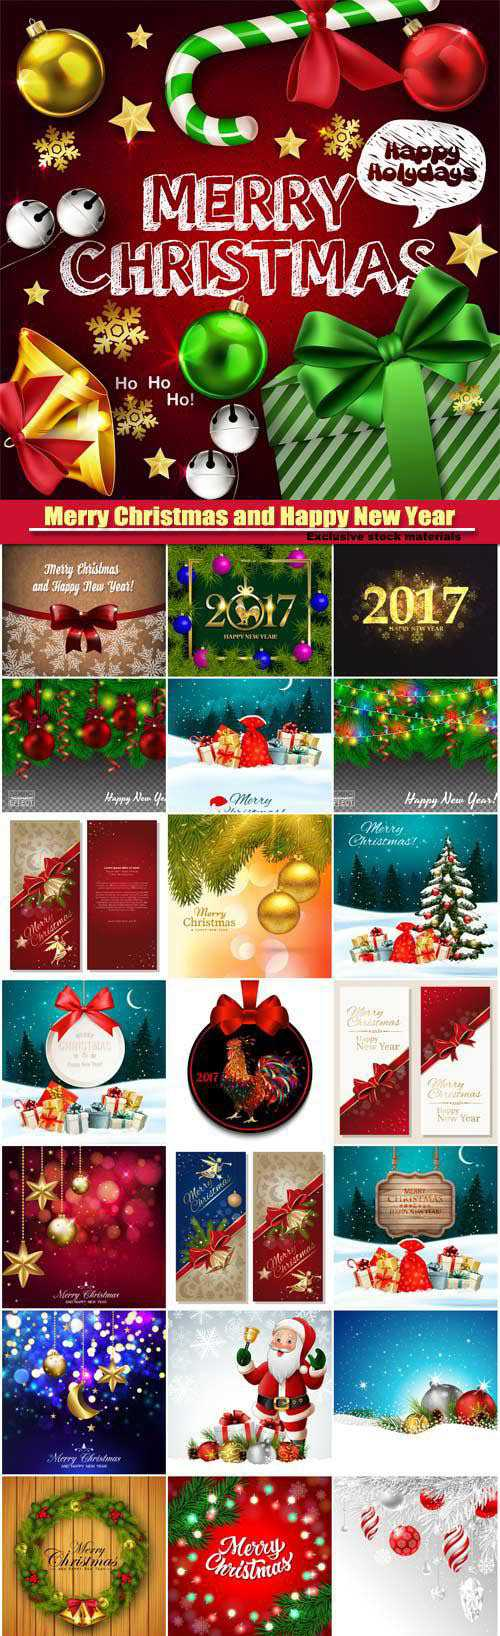 Merry Christmas and Happy New Year vector, greeting cards, leaflets and brochures